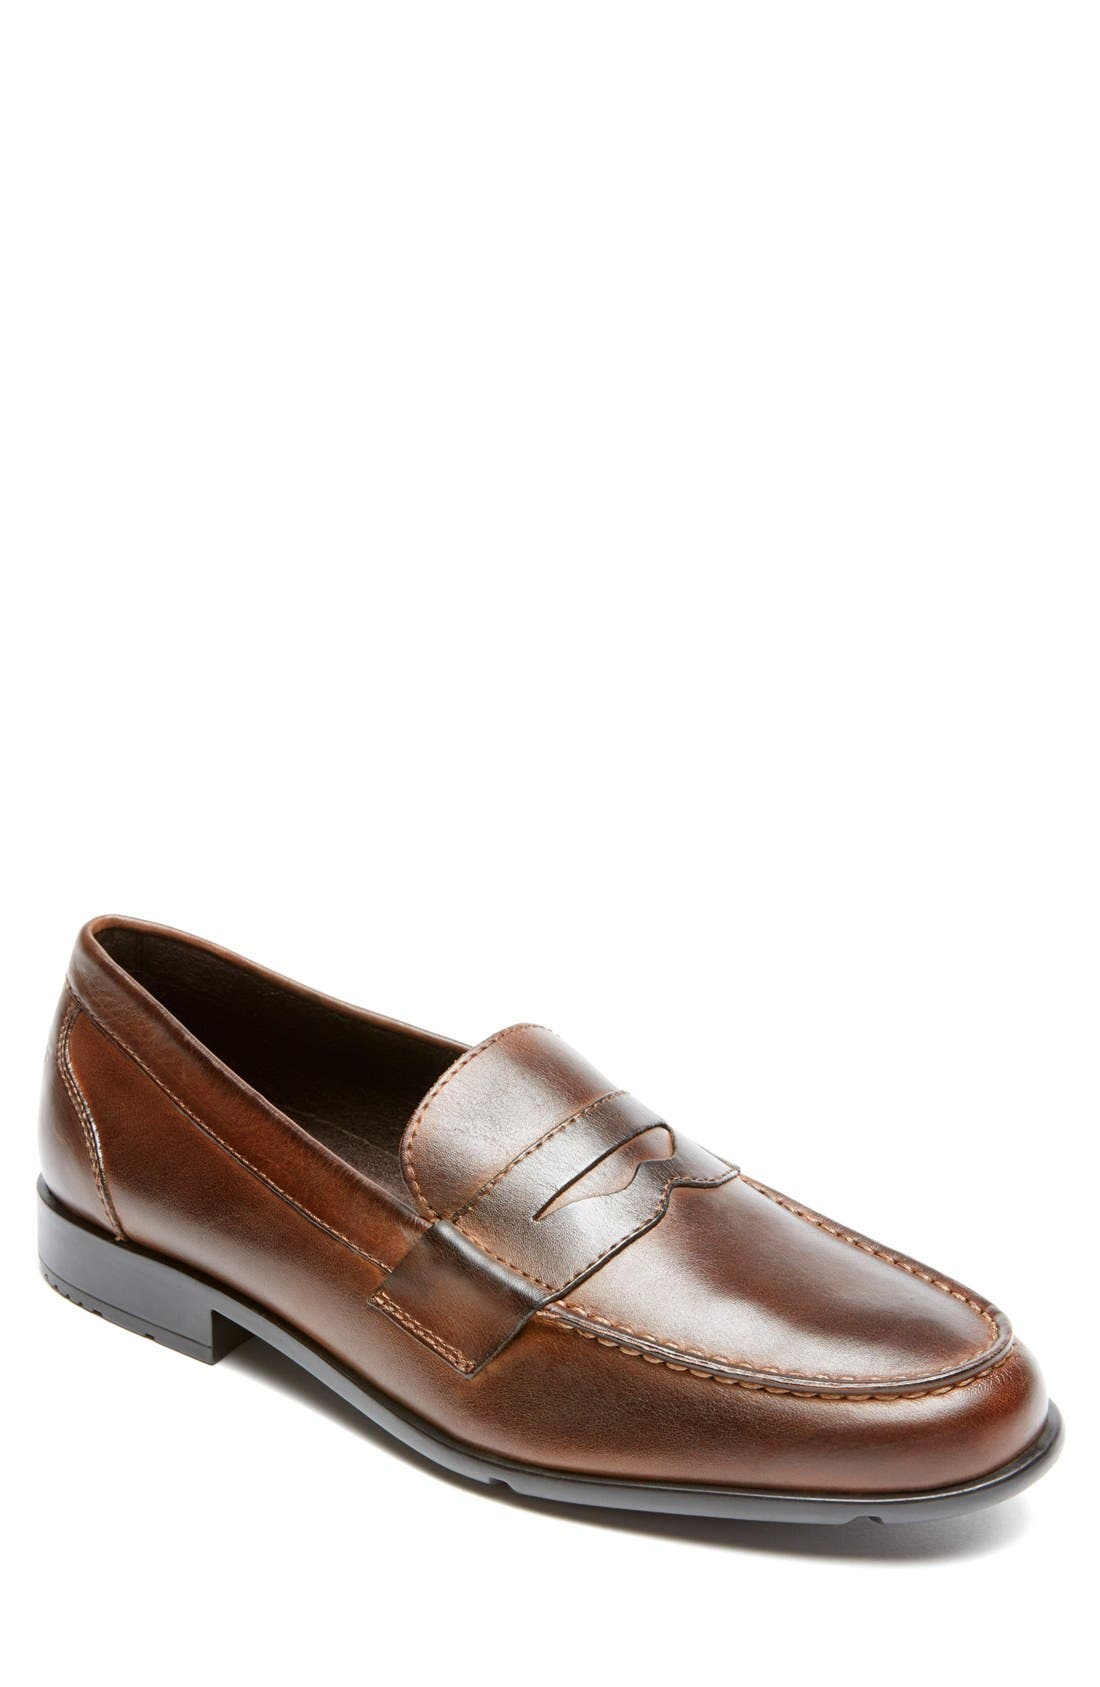 Leather Penny Loafer,                             Main thumbnail 1, color,                             Brown